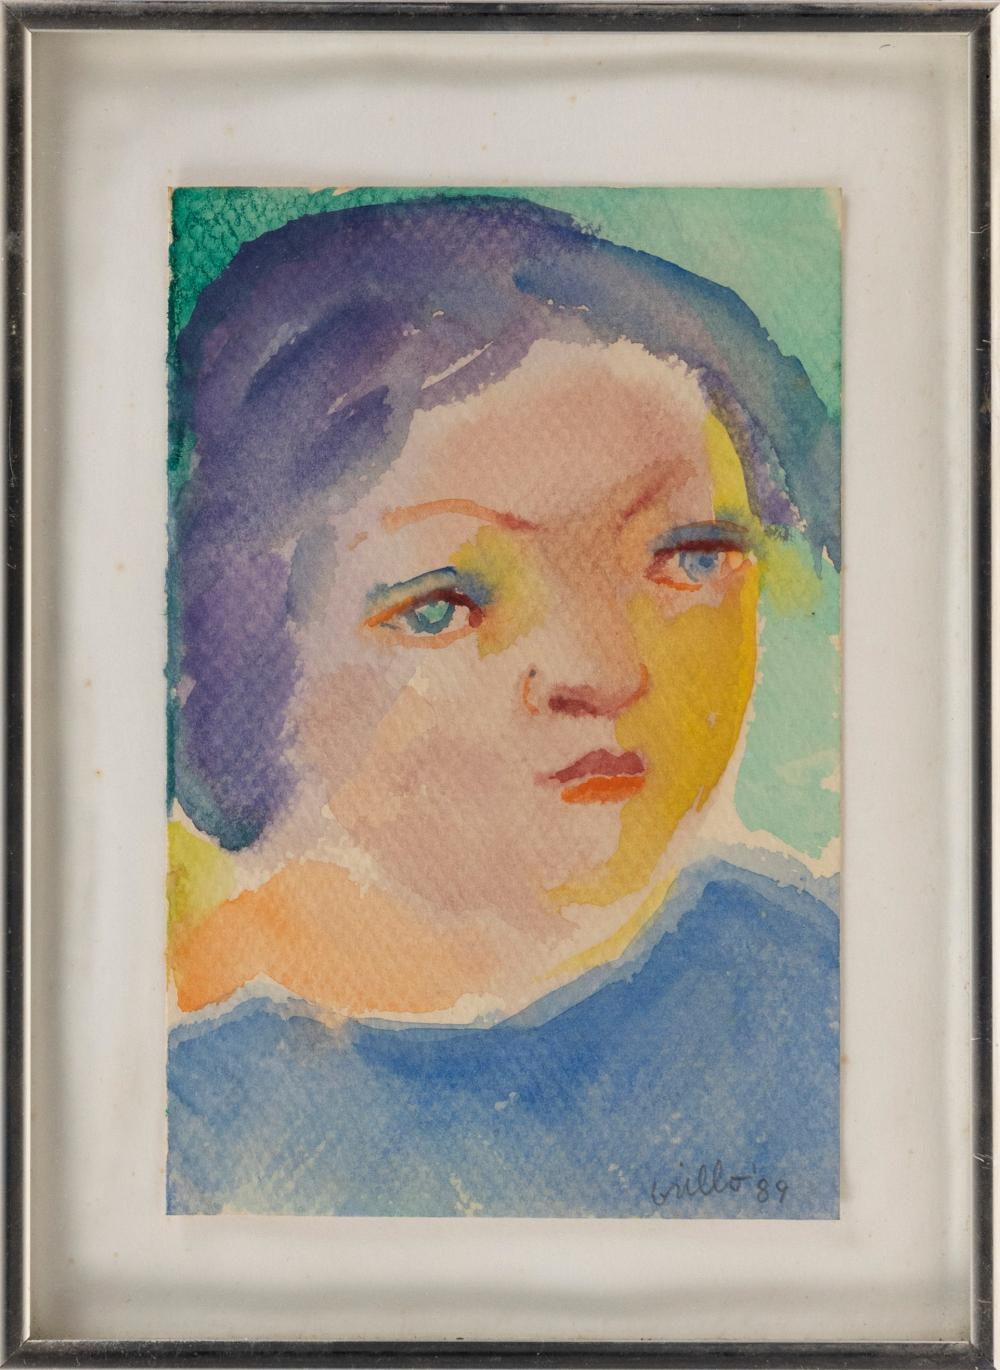 """JOHN GRILLO , Massachusetts, 1917-2014, Portrait of a woman., Signed and dated lower right """"Grillo '89""""., Watercolor on paper, 8.5"""" x 5.5"""". Framed 11"""" x 8.25""""."""